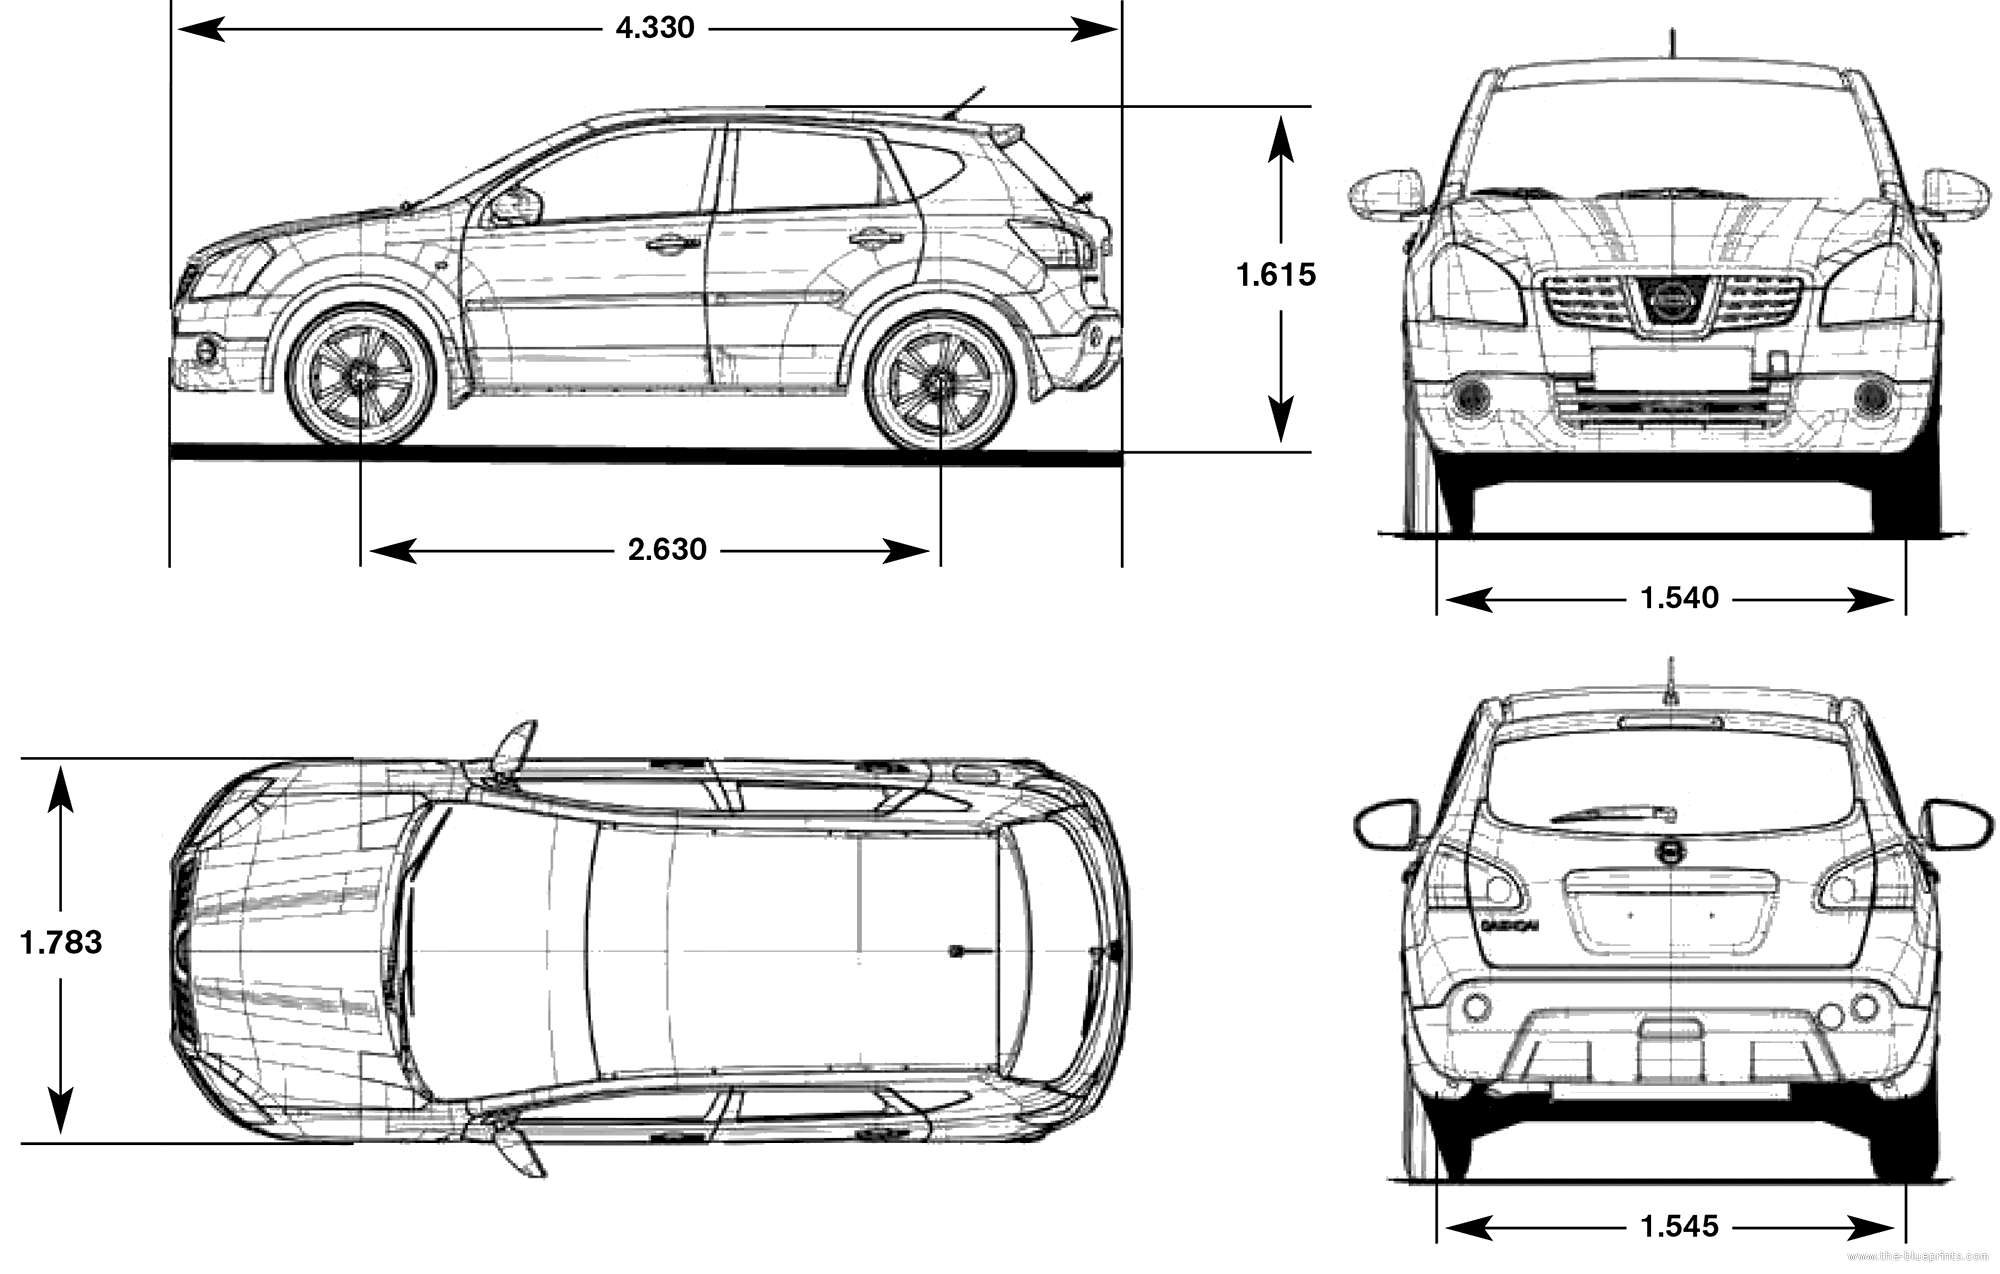 Specs additionally Create Hatching In Inkscape besides 200 Metre Track Dimensions additionally Specs also 2010 07 01 archive. on smart car specifications dimensions